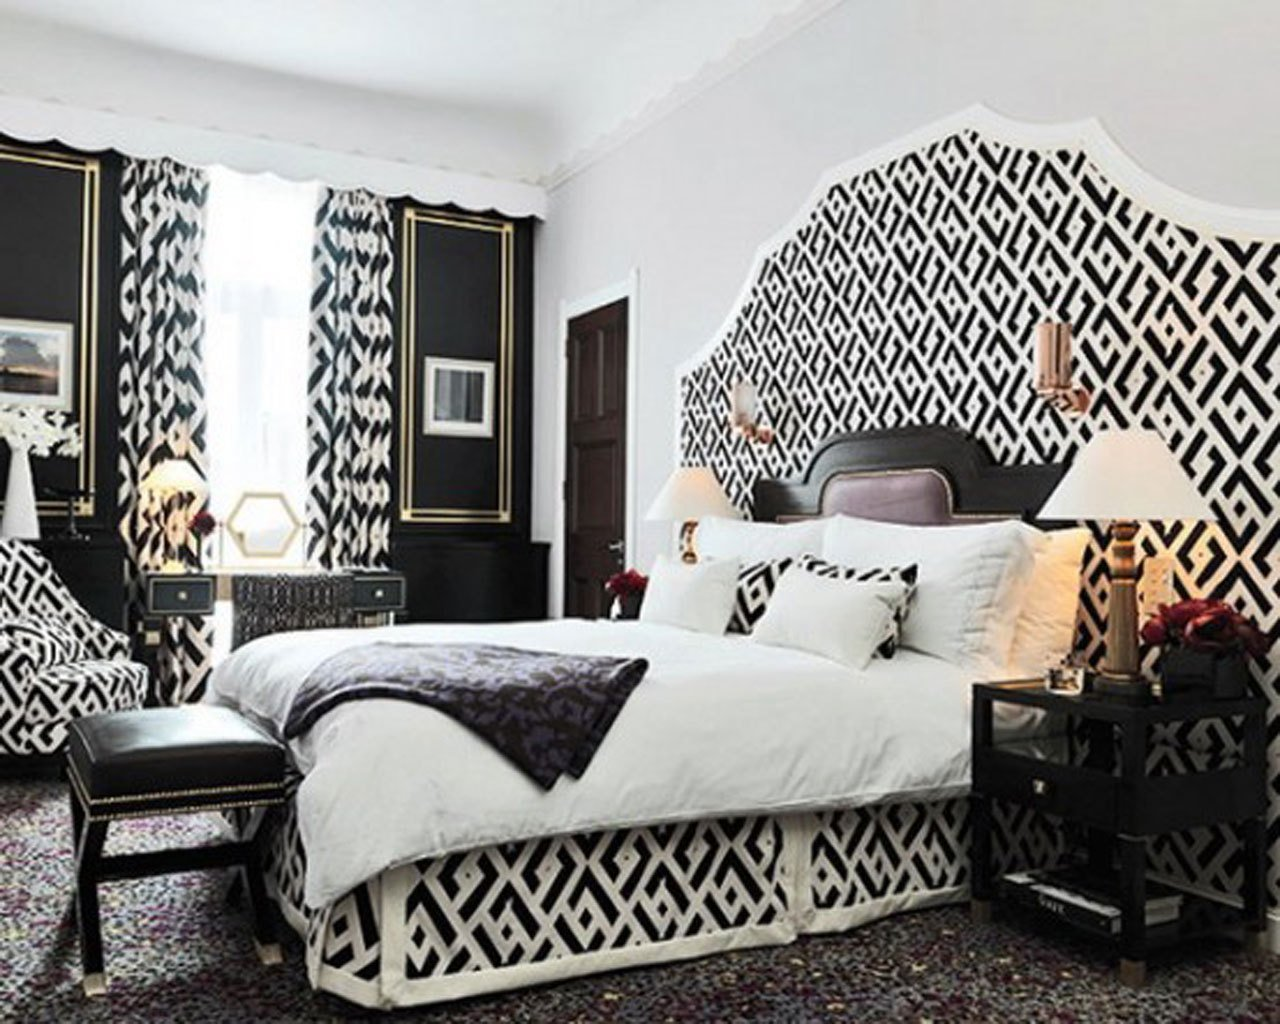 Best Black And White Contemporary Interior Design Ideas For With Pictures